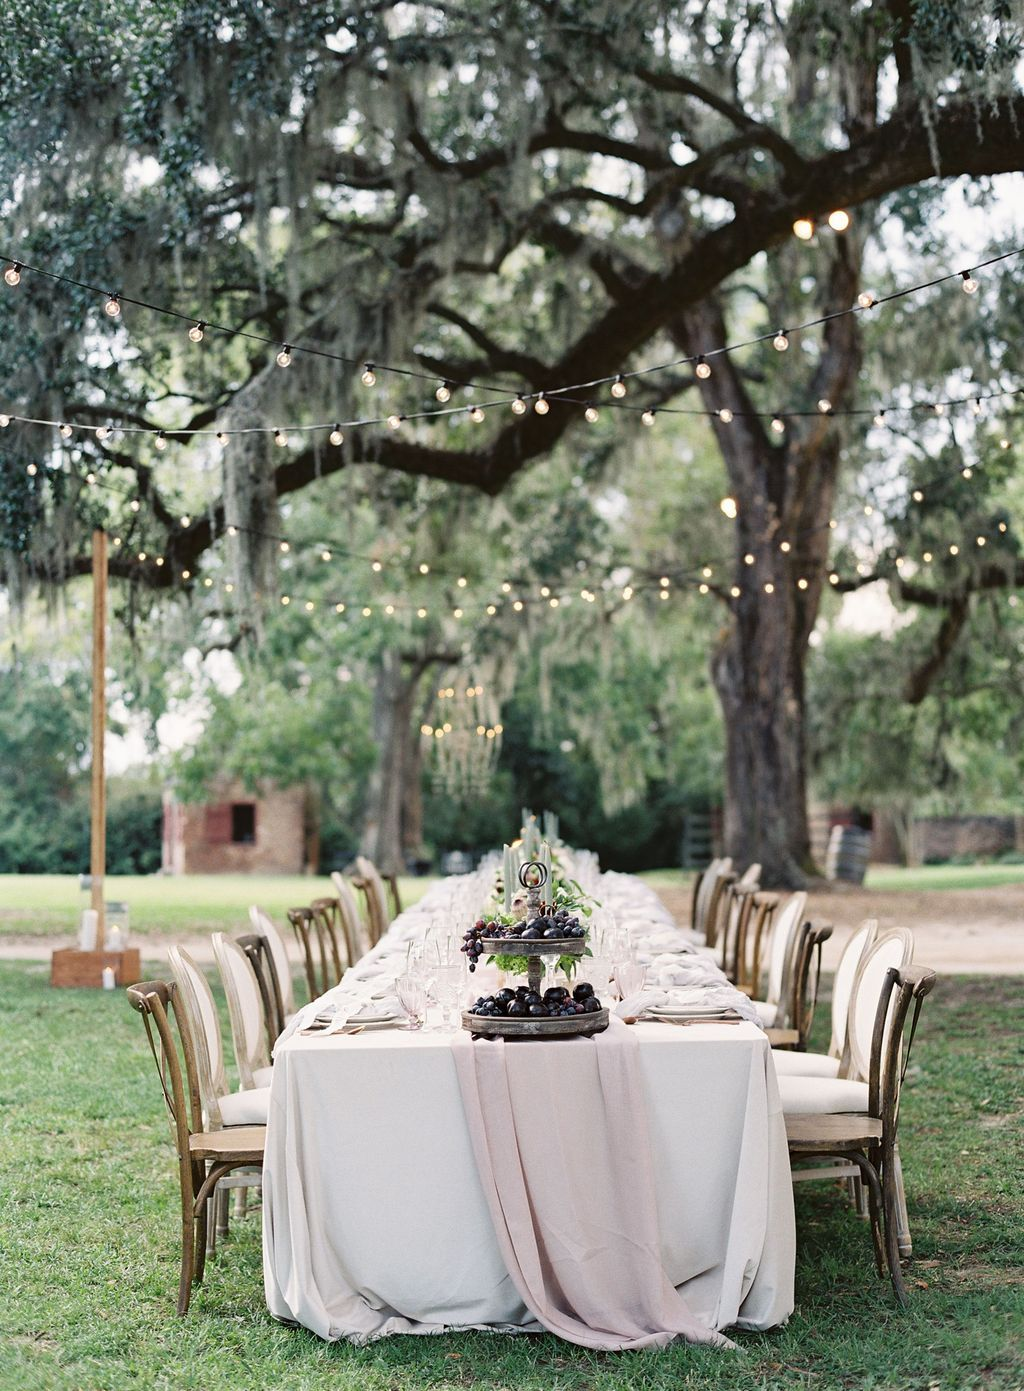 Decor ideas for wedding   Sweet And Romantic Backyard Wedding Decor Ideas  Wedding